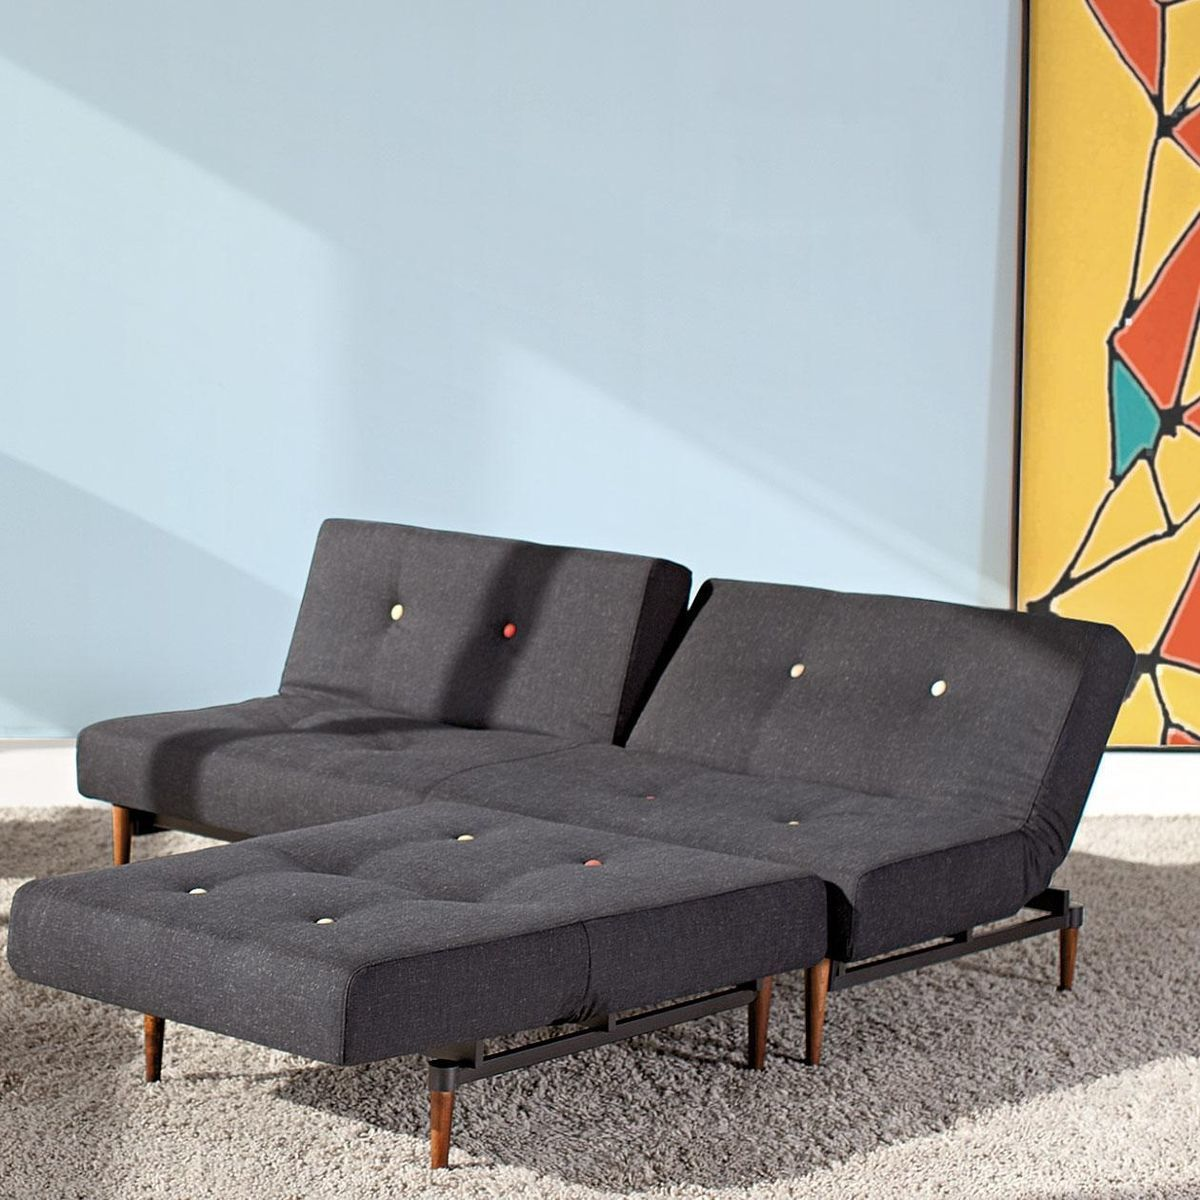 Fiftynine Sofa Bed Innovation